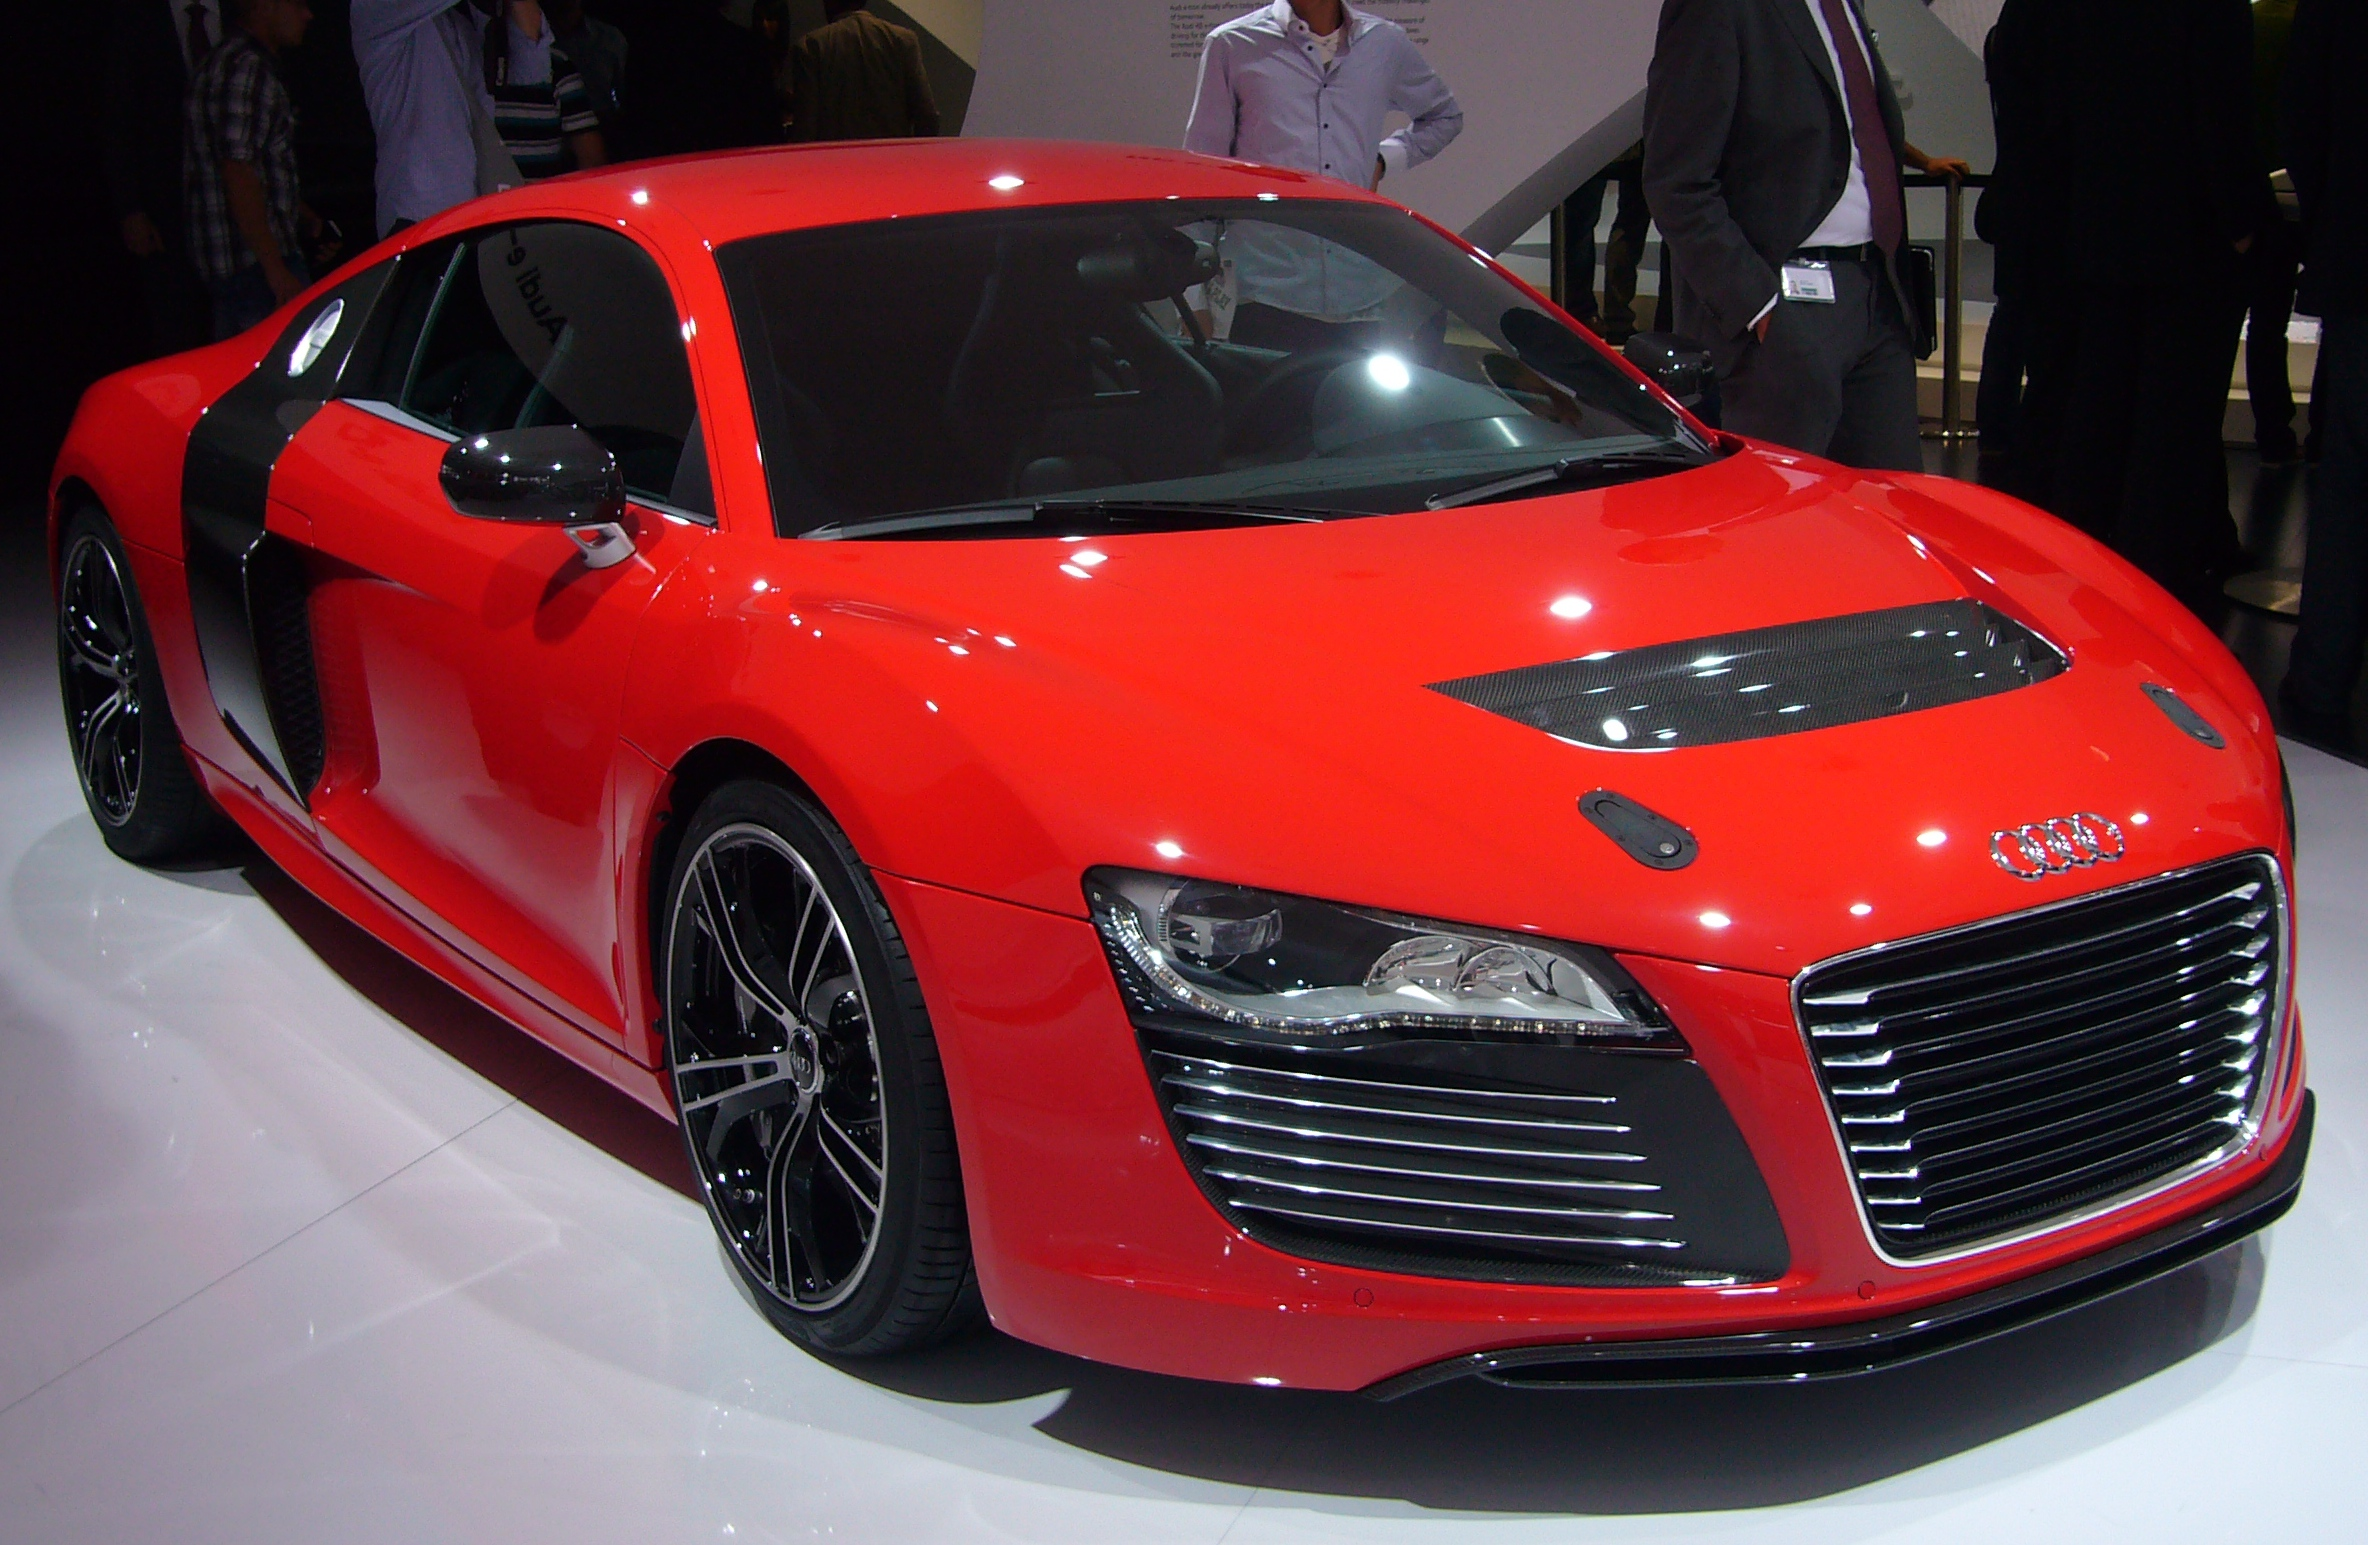 FileAudi R Etron Front Quarterjpg Wikimedia Commons - Audi r8 etron